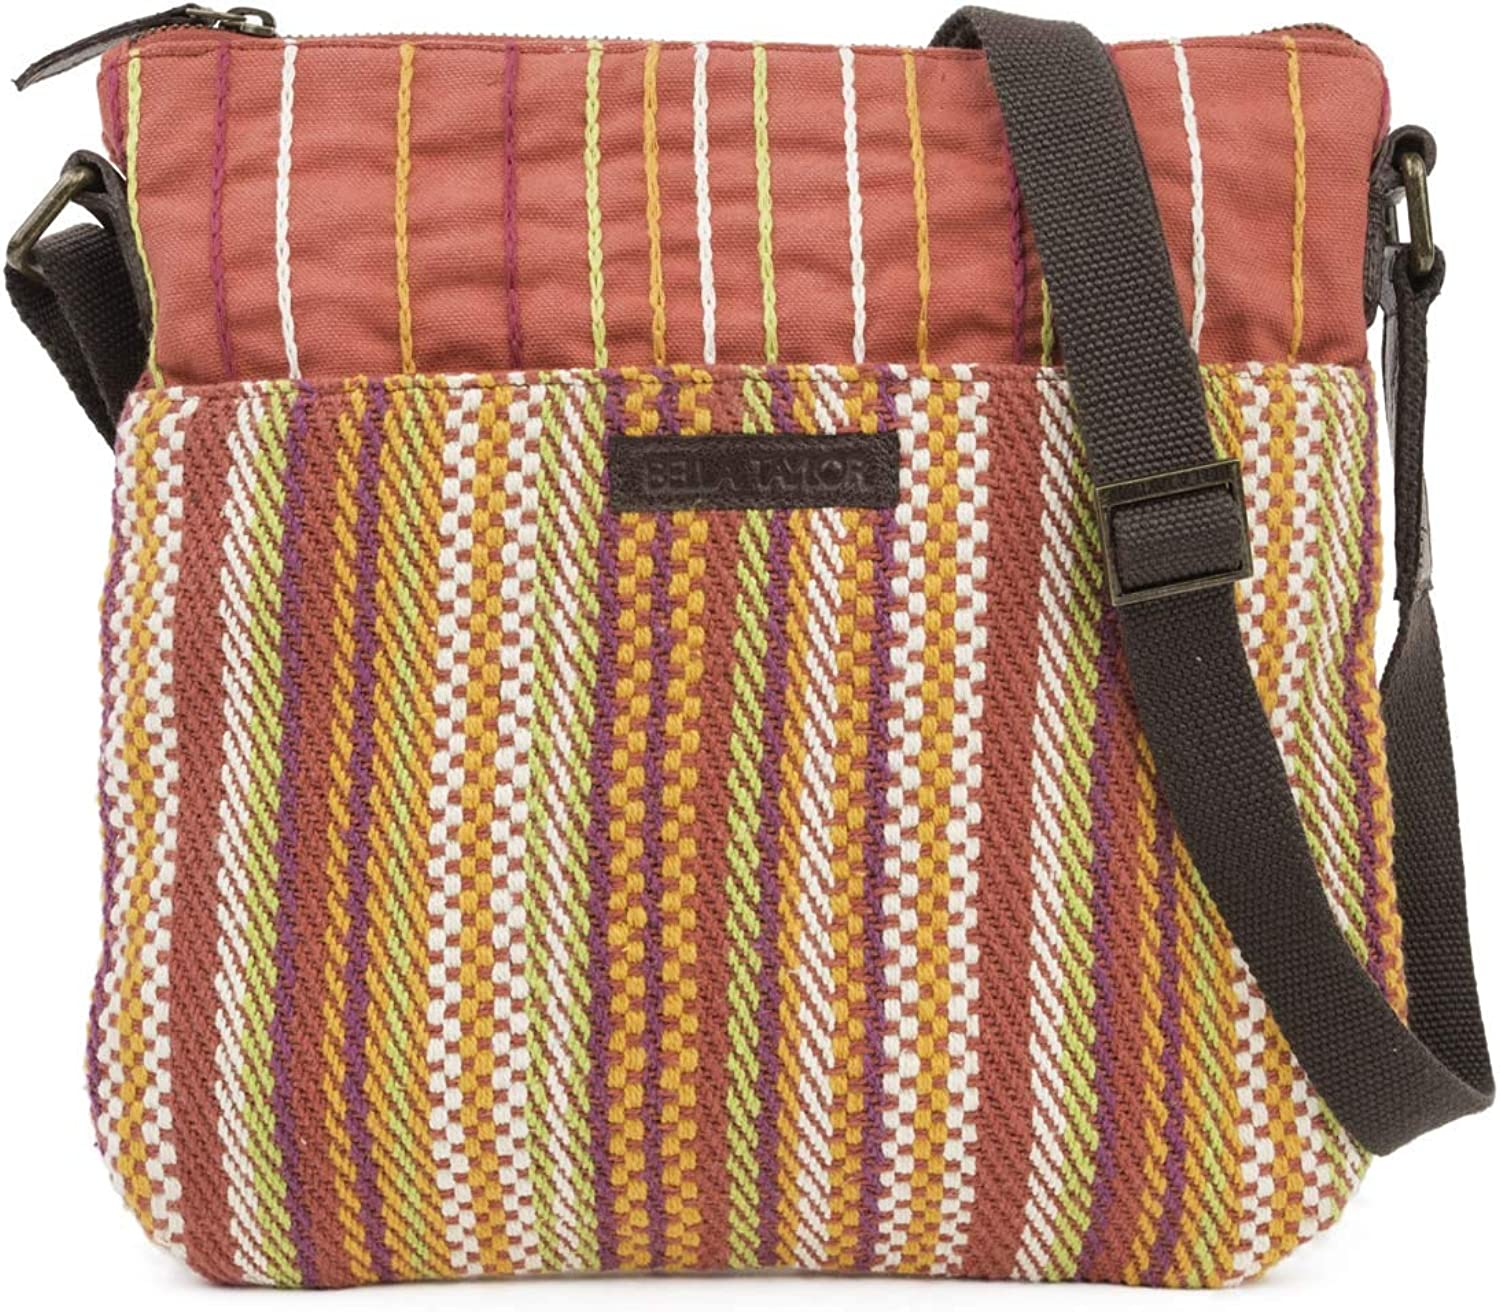 Bella Taylor Explorer Crossbody Bags